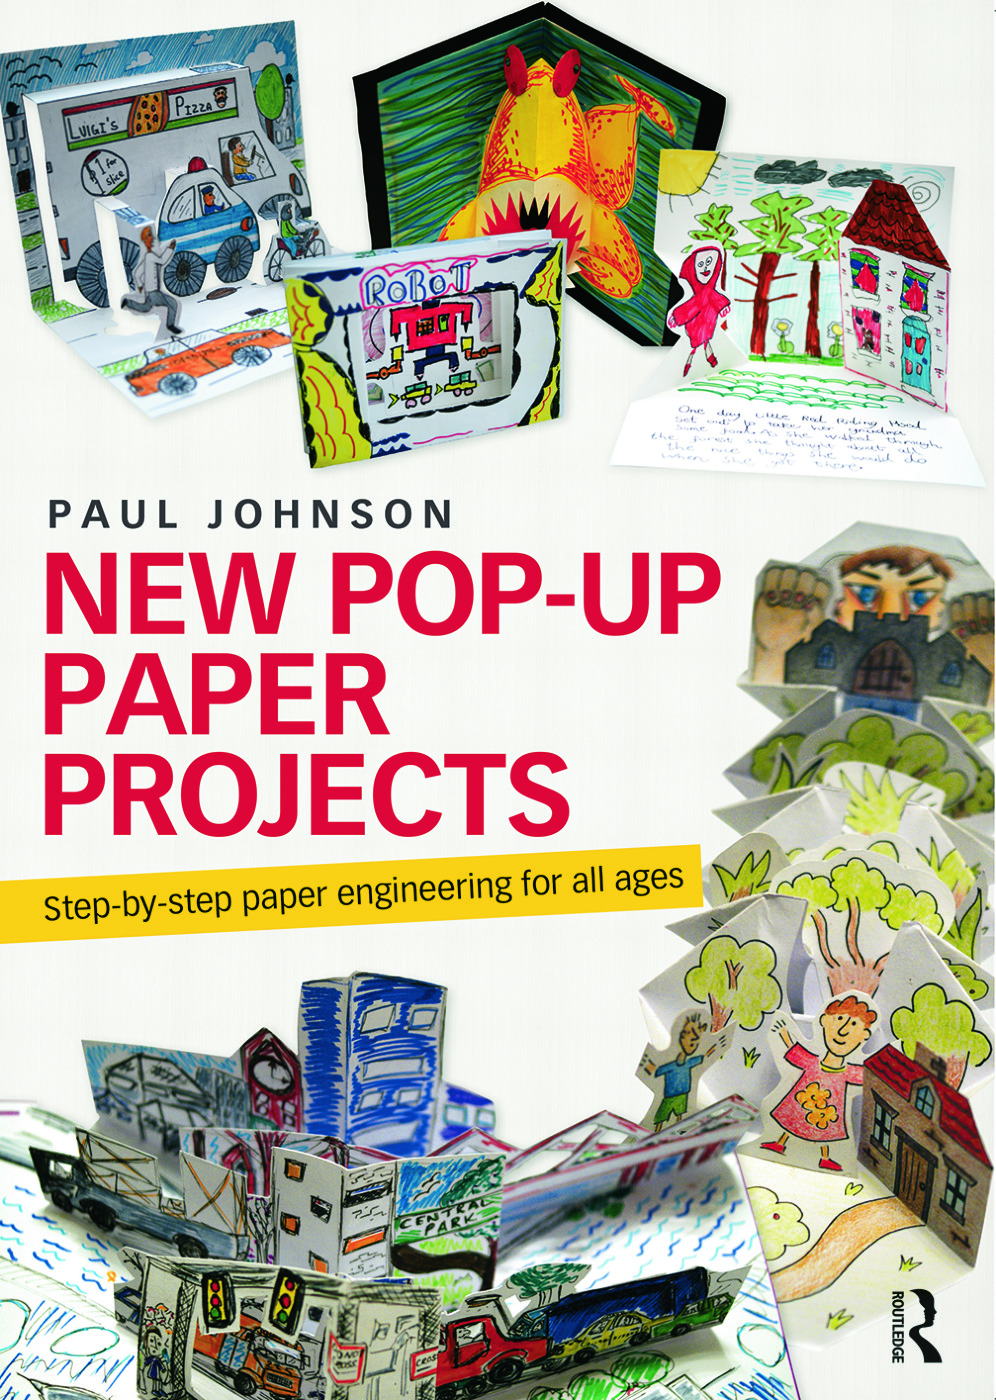 New Pop-Up Paper Projects: Step-by-step paper engineering for all ages book cover